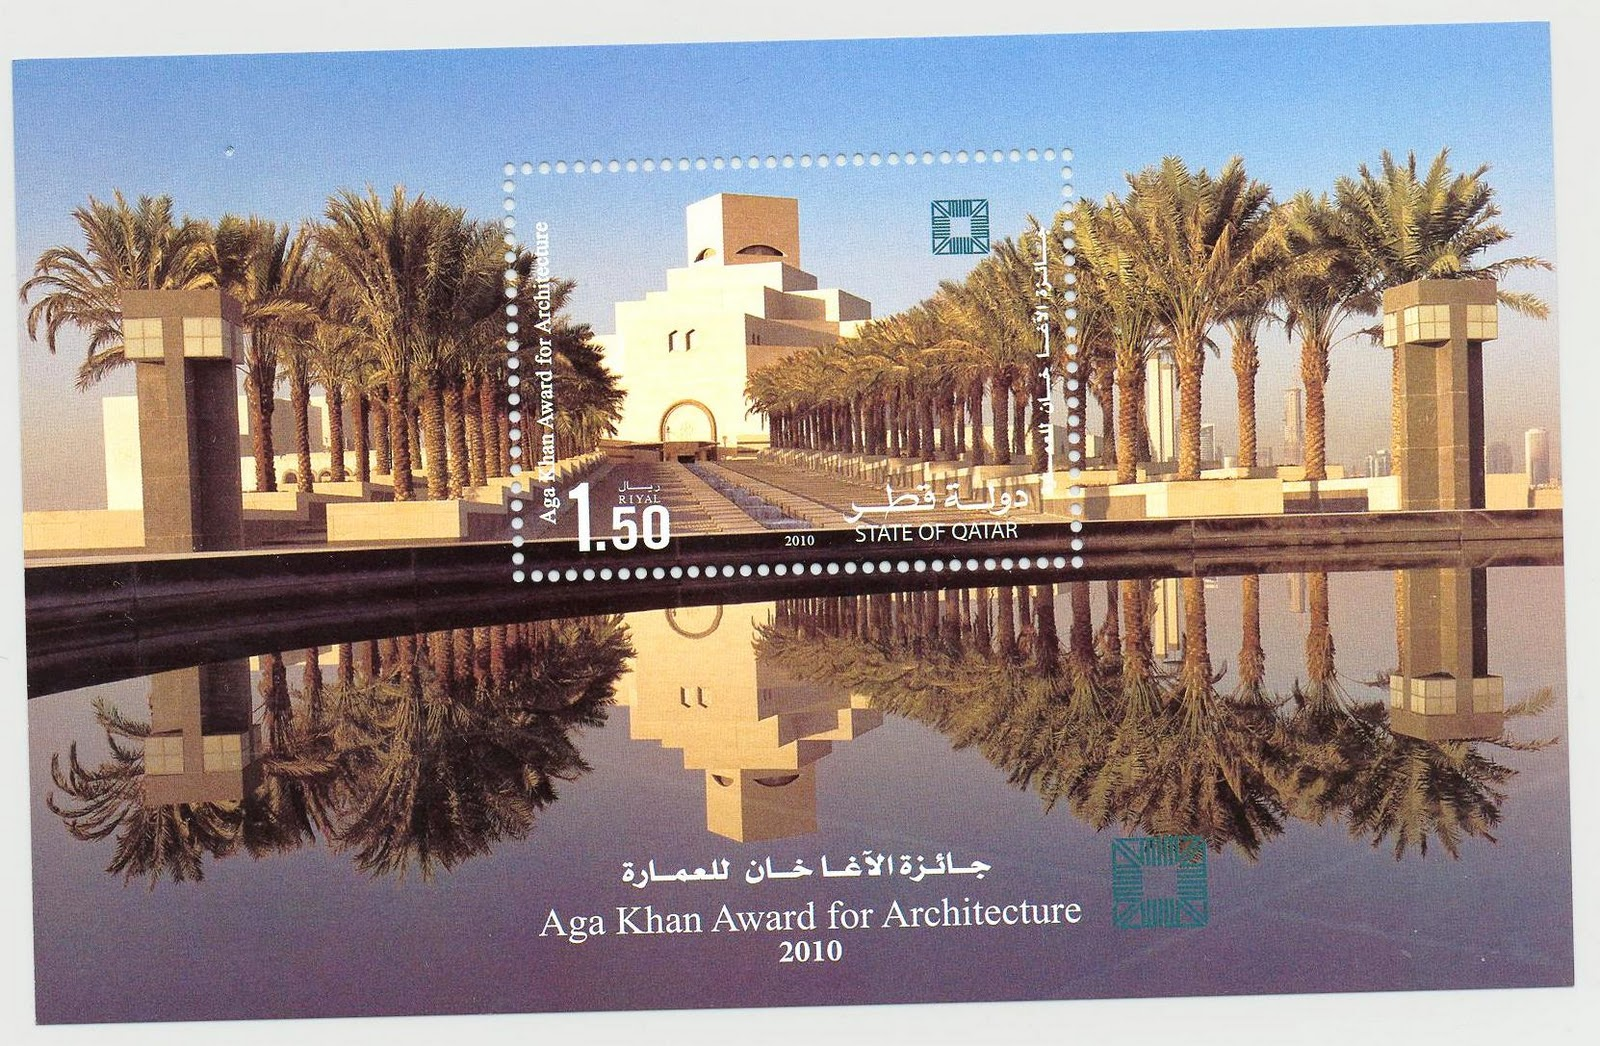 my philatelic collection aga khan award for architecture qatar. Black Bedroom Furniture Sets. Home Design Ideas